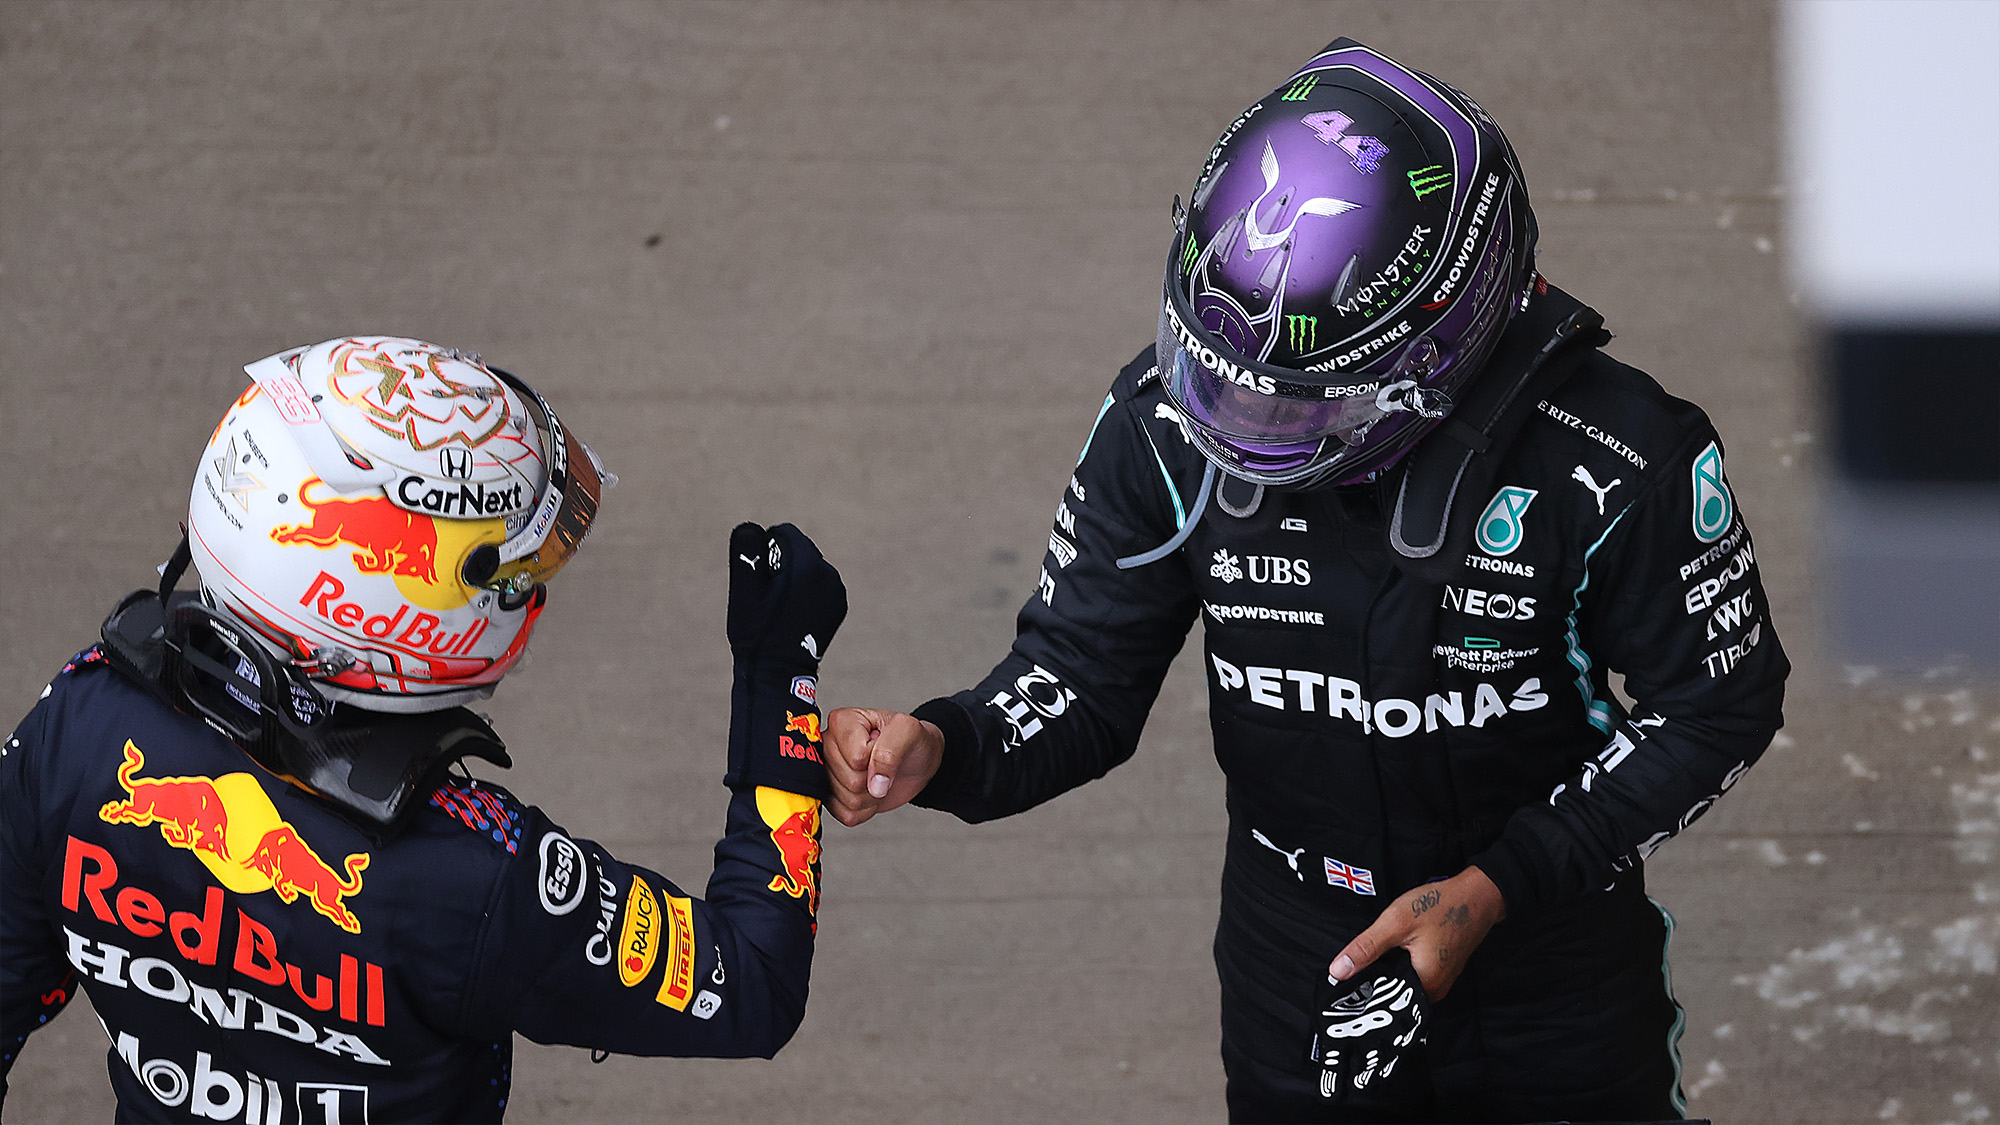 Lewis Hamilton and Max Verstappen bump fists